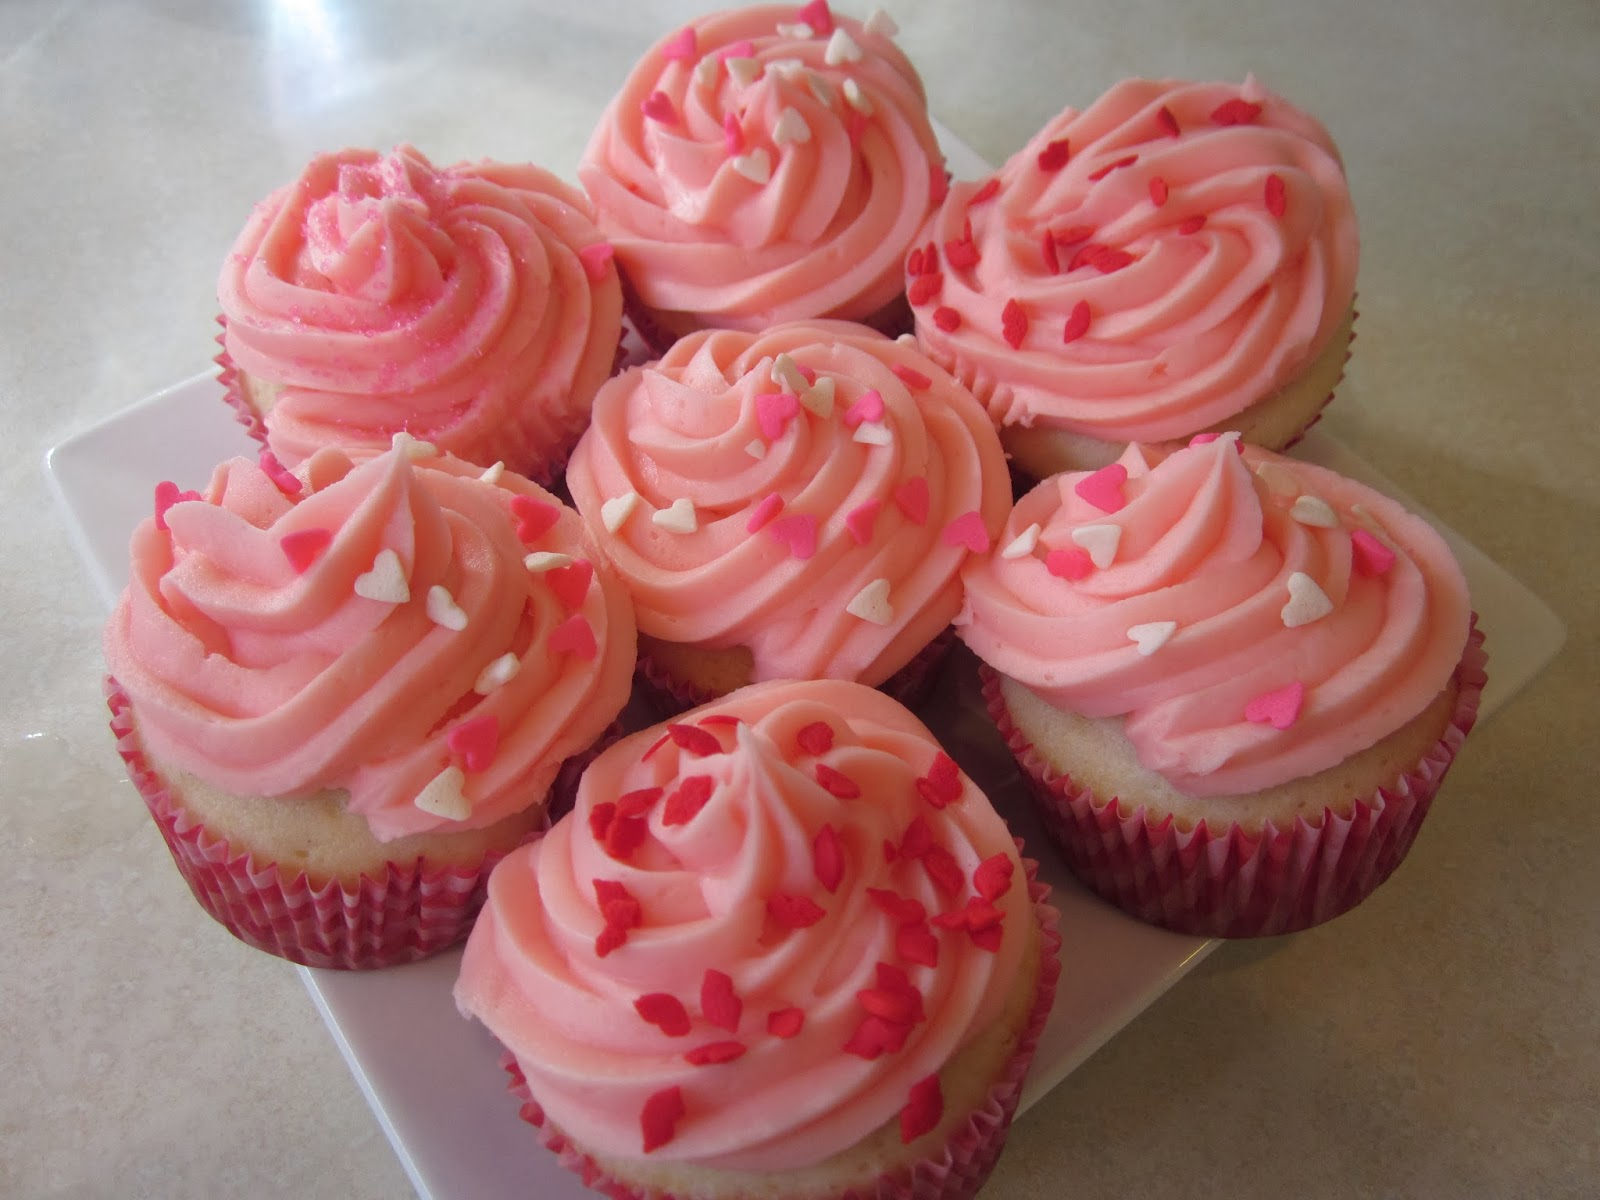 Princes, Ponies and Diamonds: Pink Champagne Cupcakes